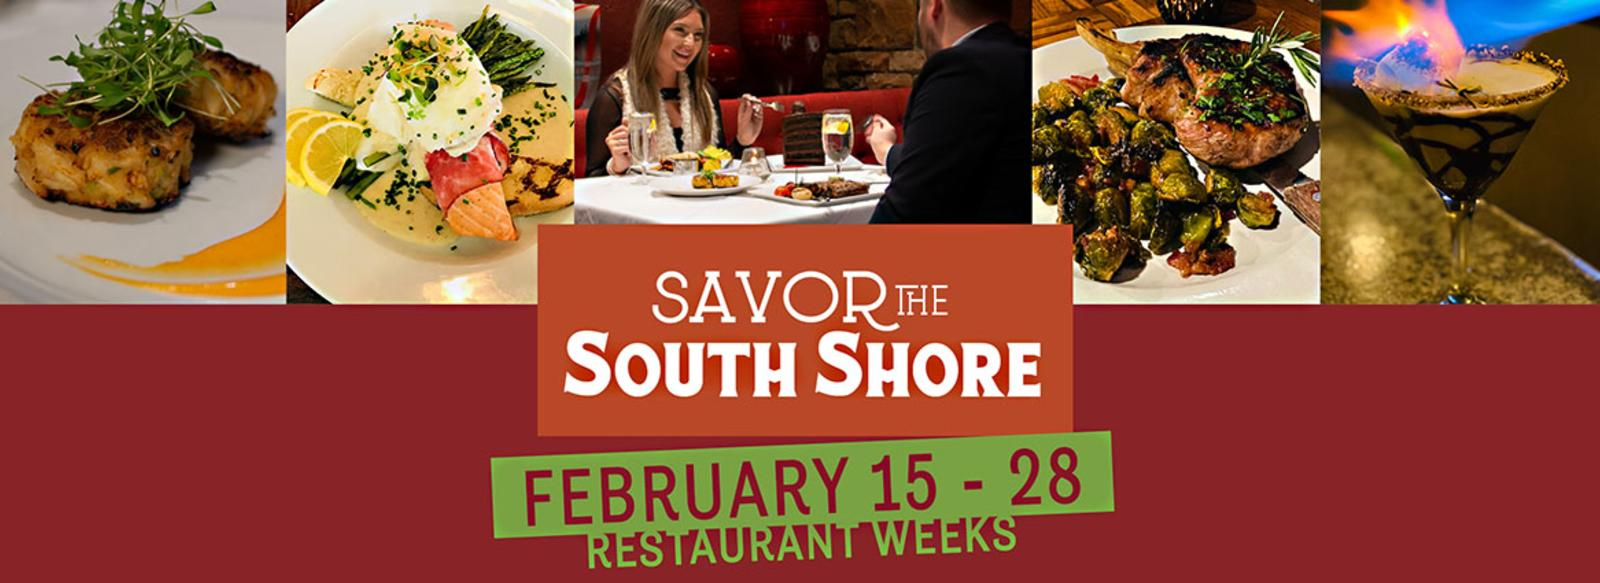 Savor the South Shore 2021